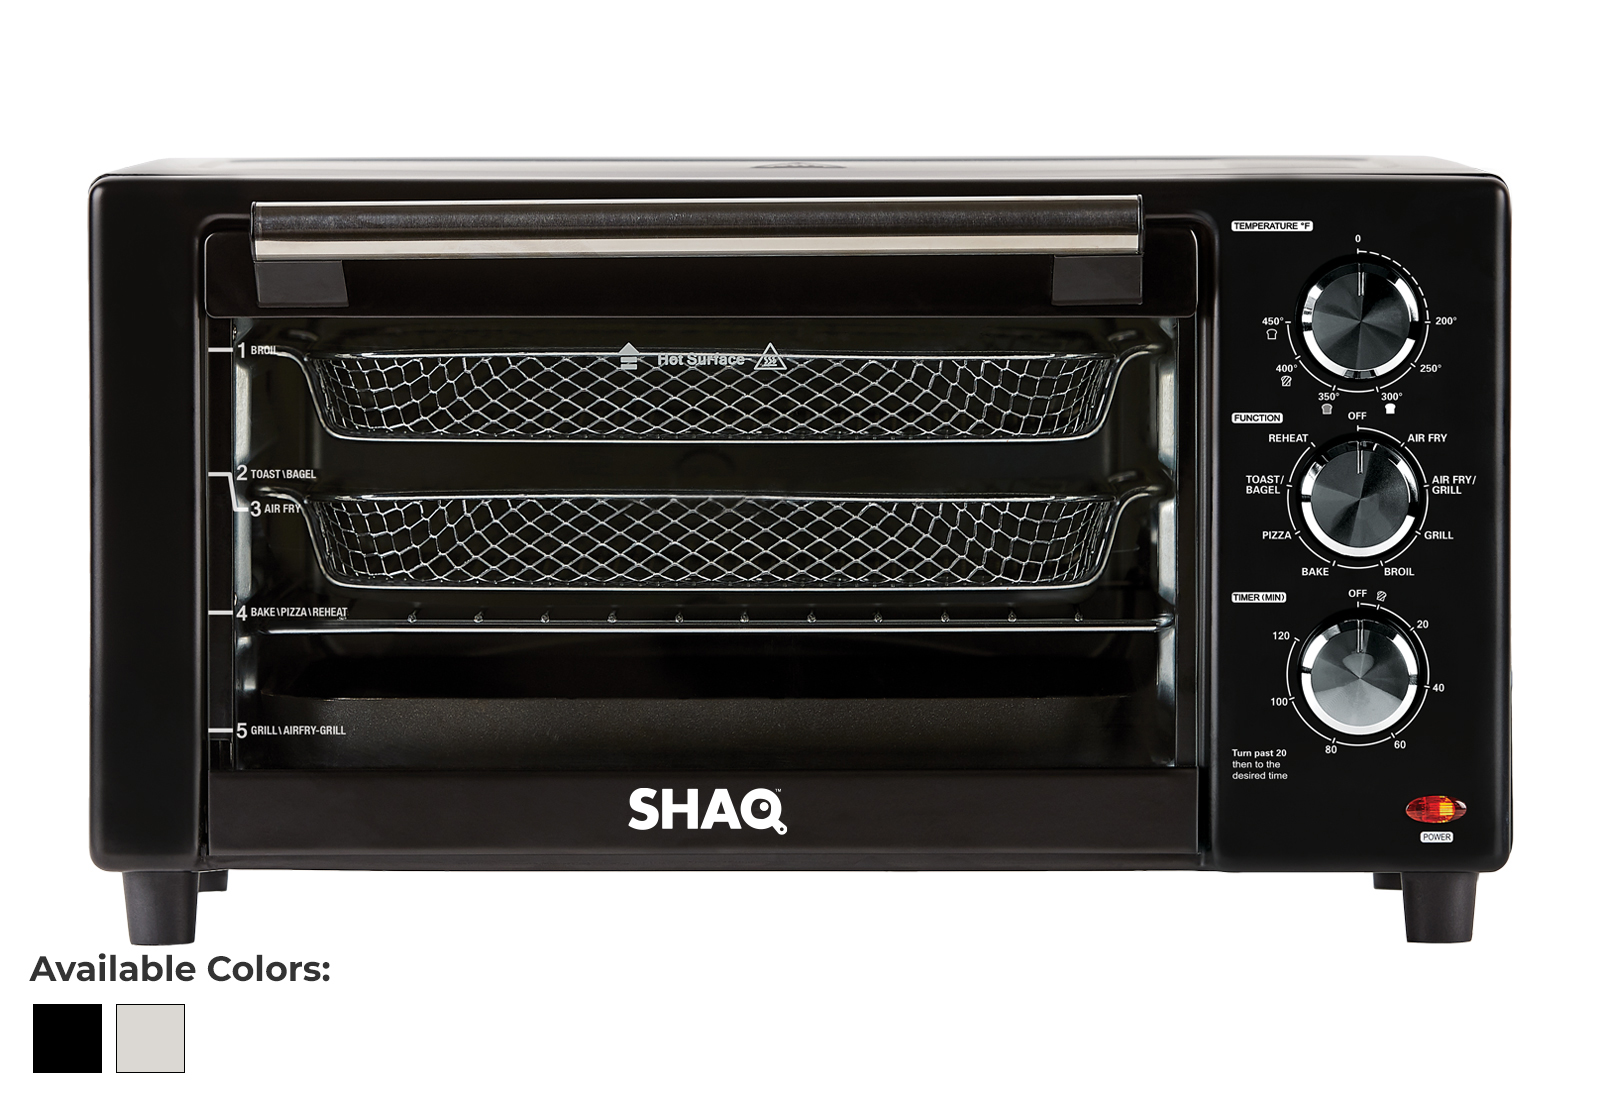 SHAQ Air Fryer Grill Product Image